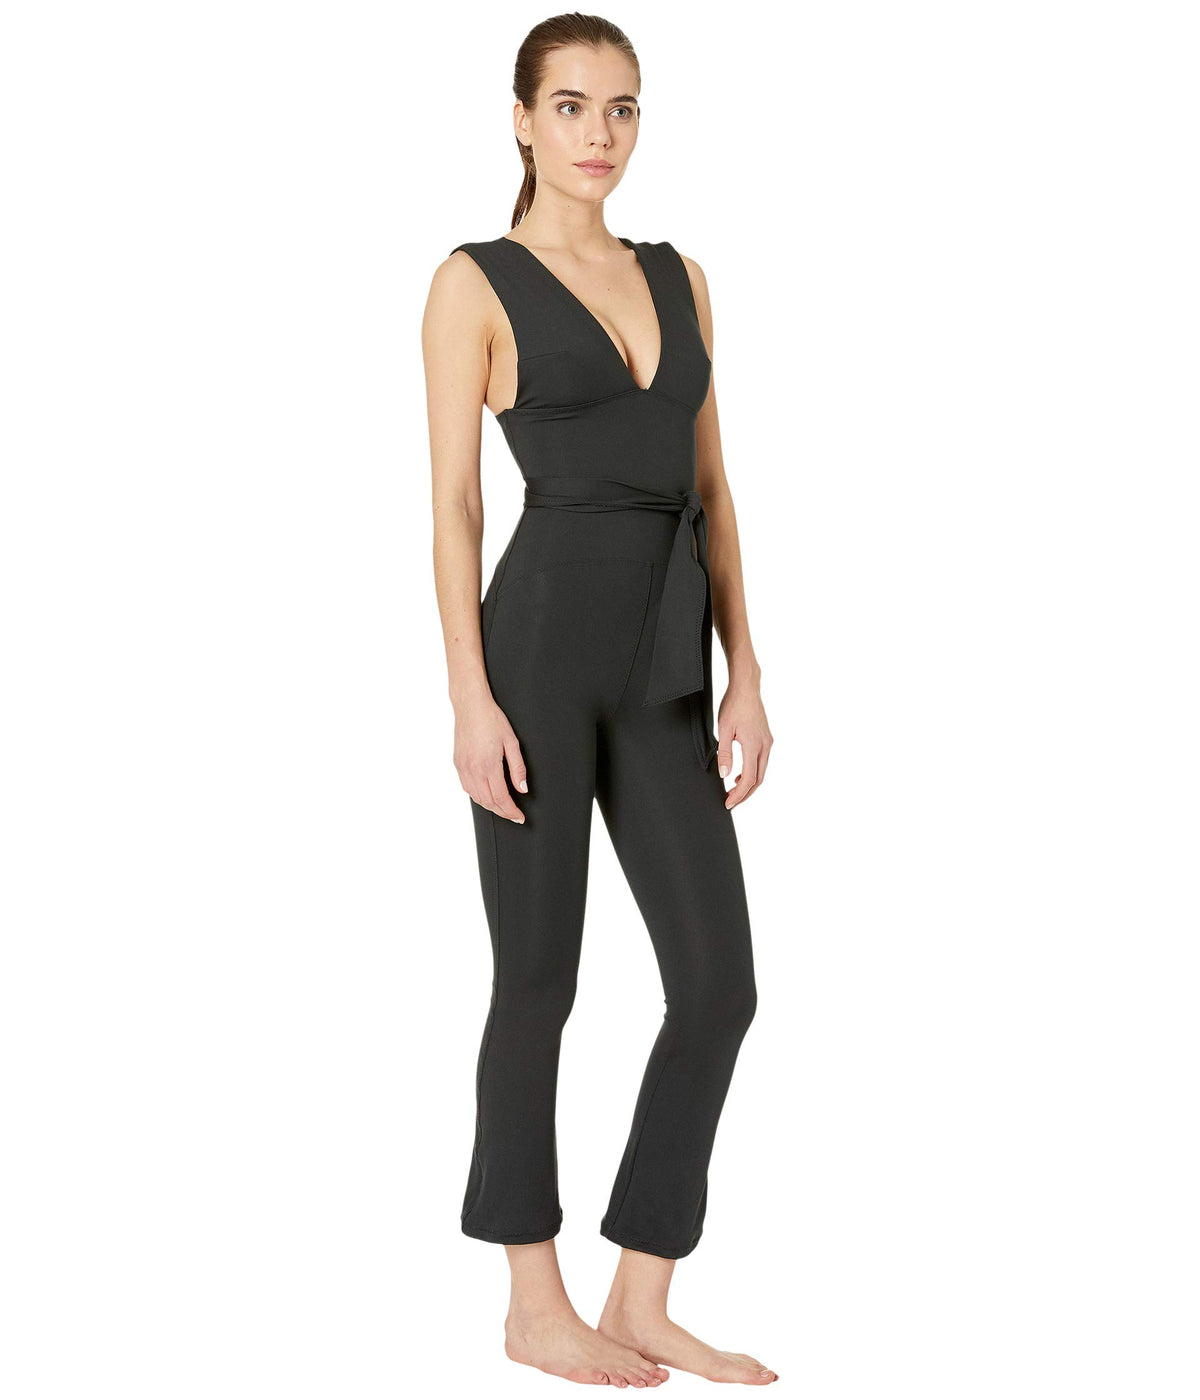 After Hours One-Piece